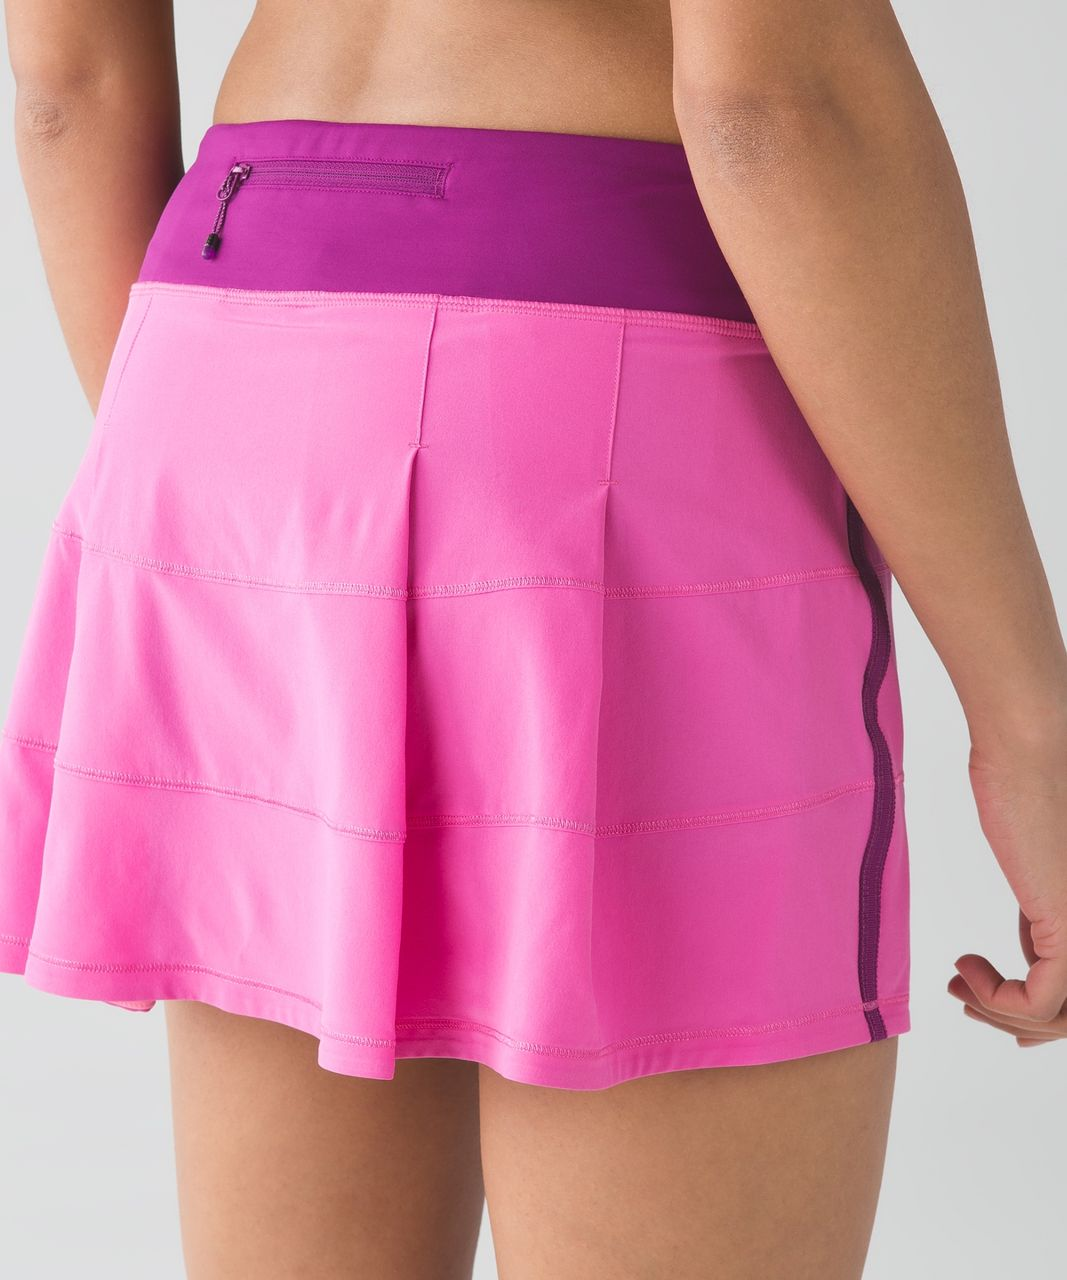 Lululemon Pace Rival Skirt II (Tall) - Pink Paradise / Regal Plum